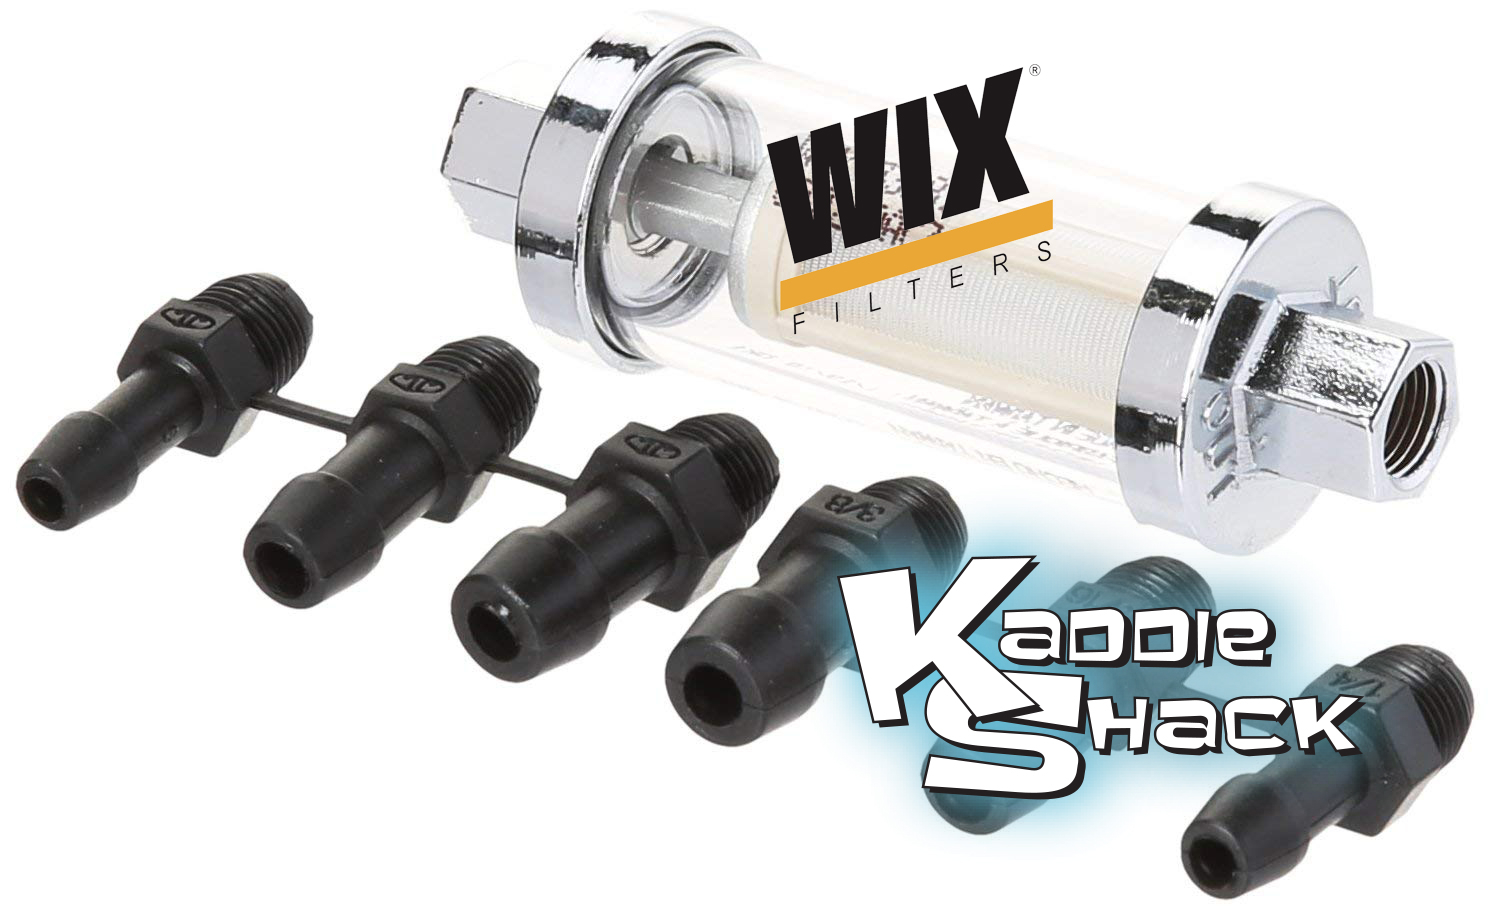 hight resolution of wix clear fuel filter with cleanable filter element kaddie shack parts accessories for vintage vw s